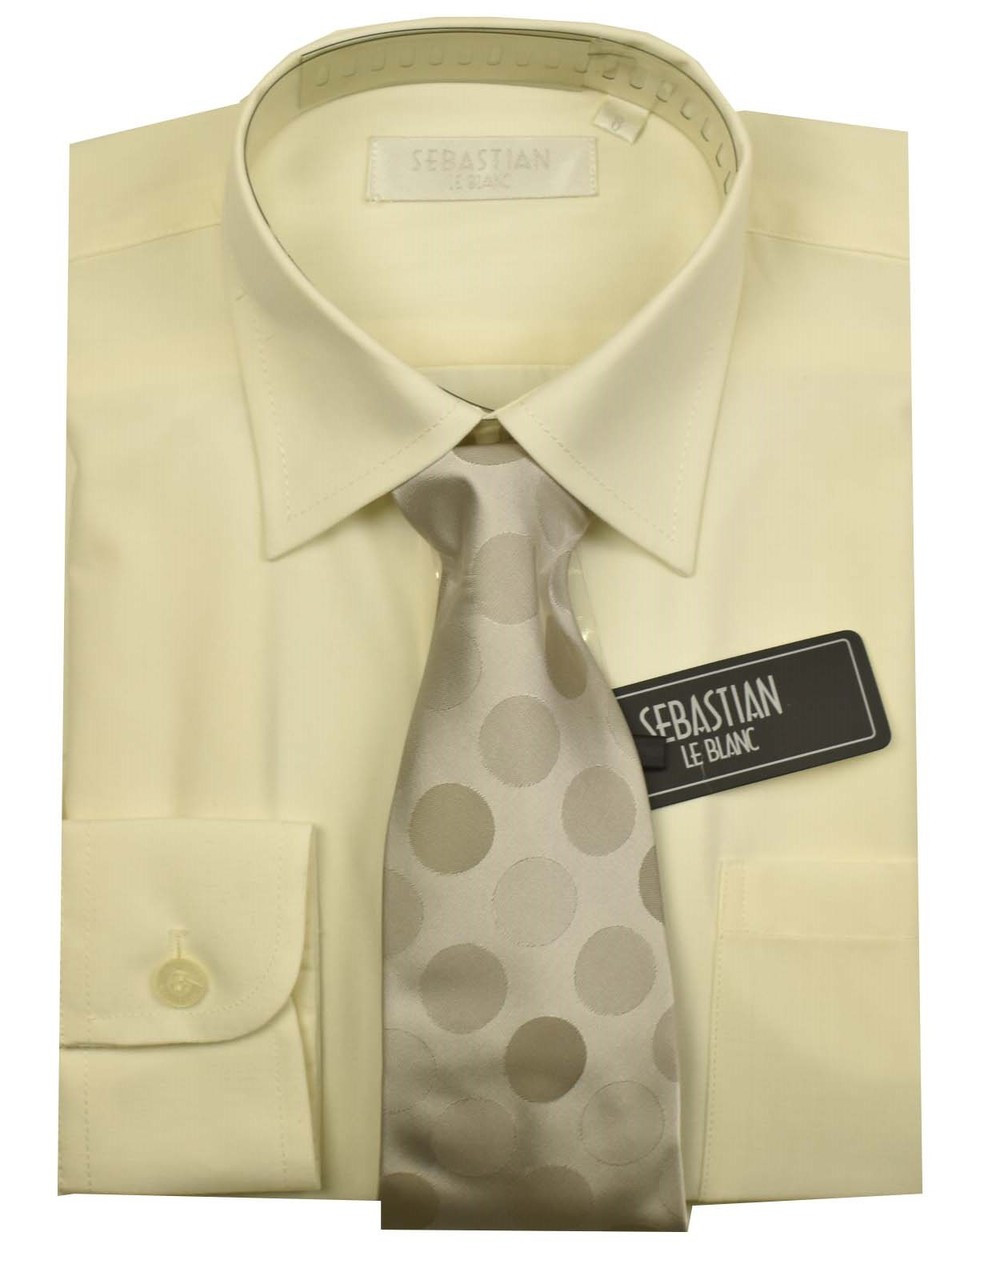 1260f27f5 oys Formal Slim Fit Shirt And Tie By Sebastian - Ivory